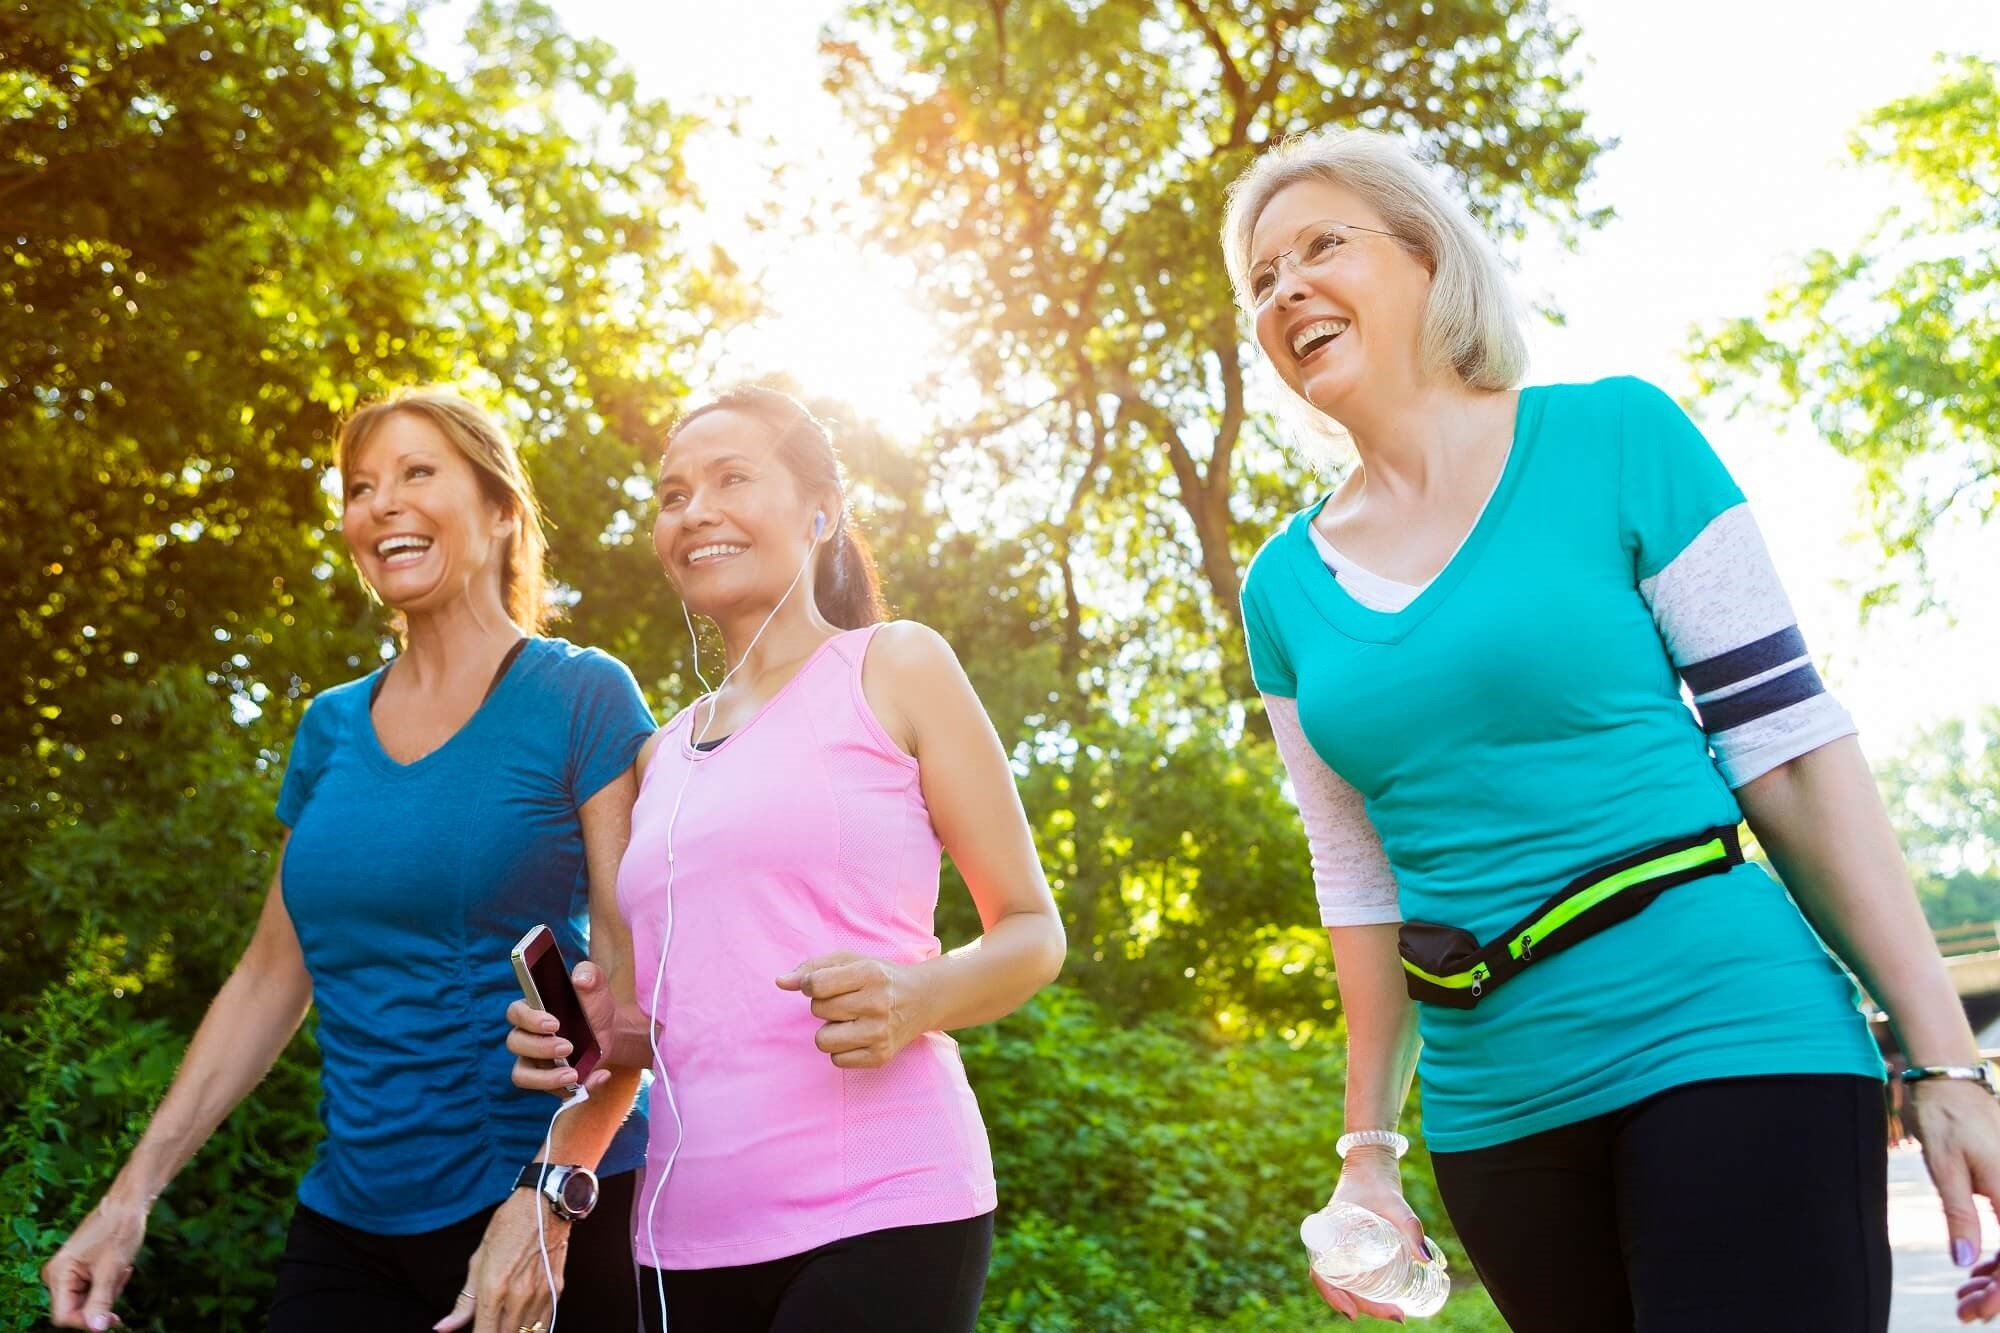 Moderate Physical Activity Slows Cartilage Loss in Women With Knee Osteoarthritis